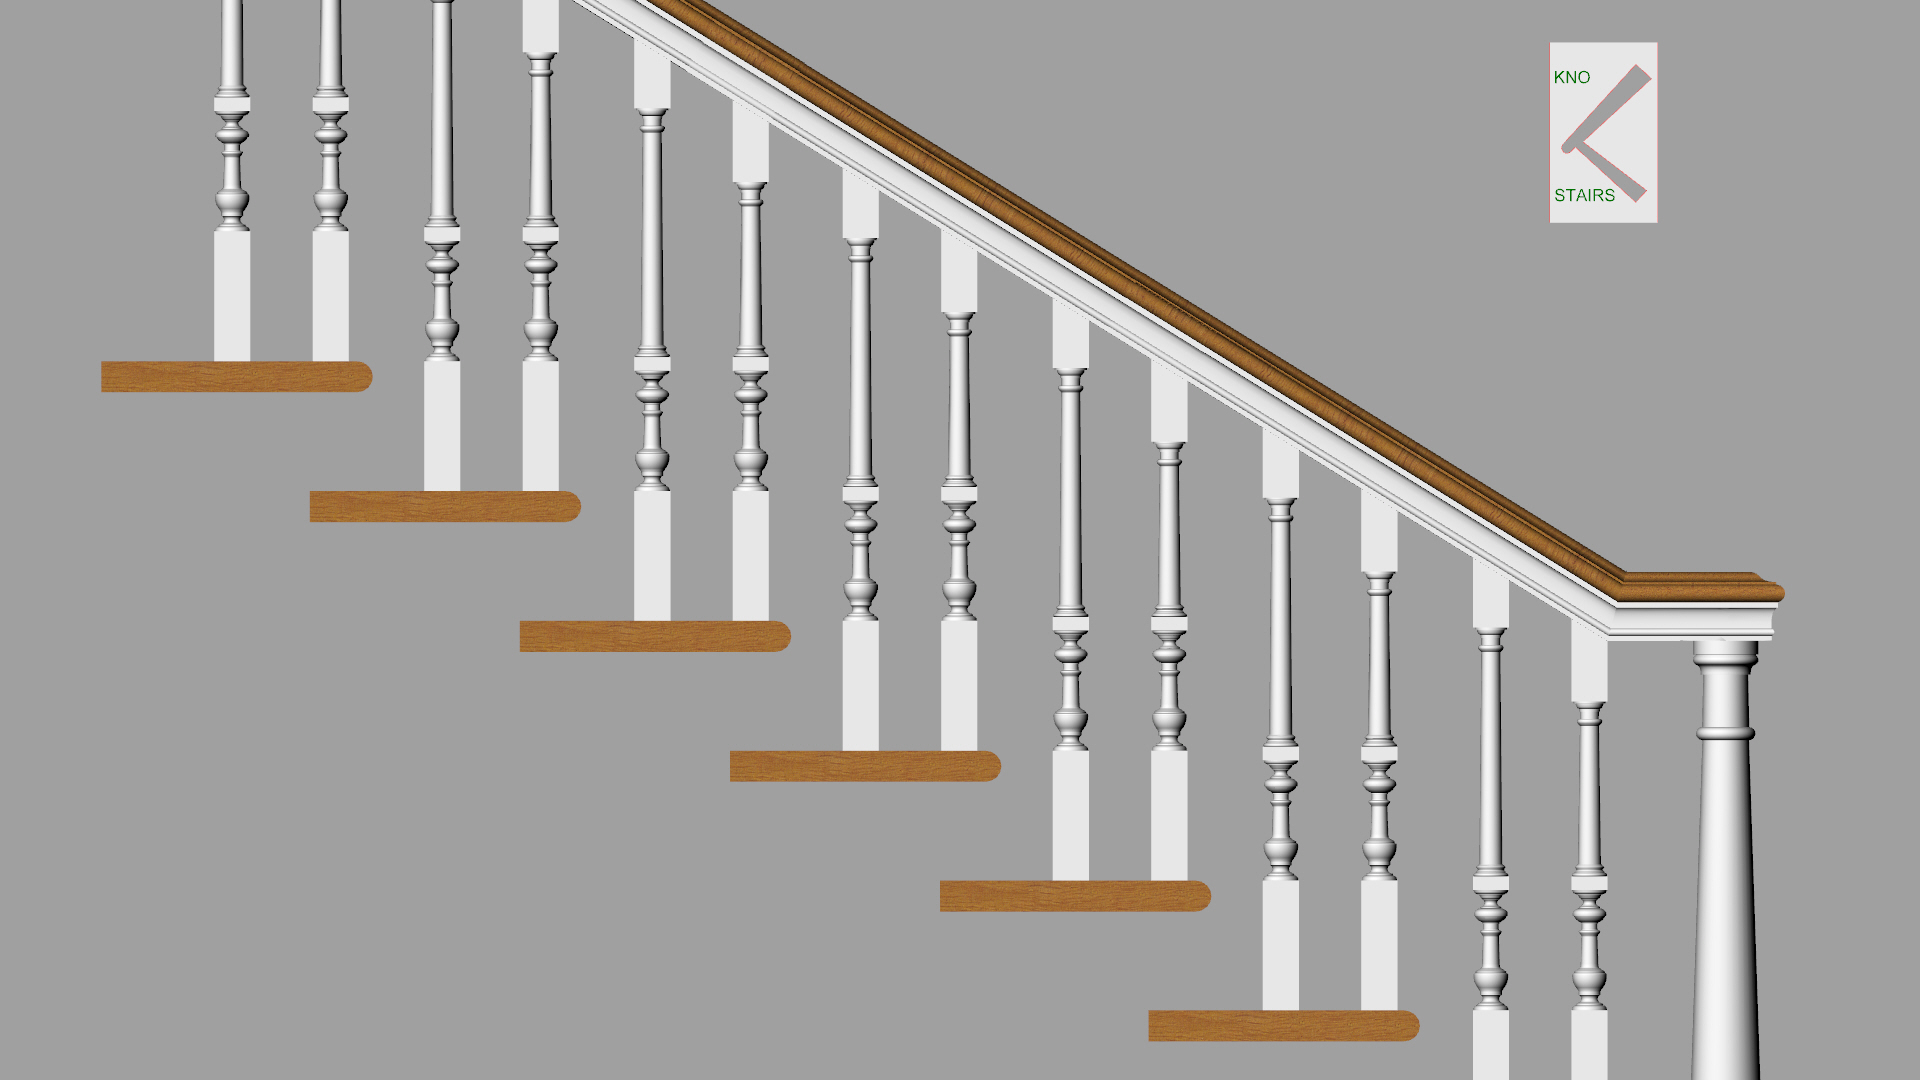 Spindles adjusted for height.